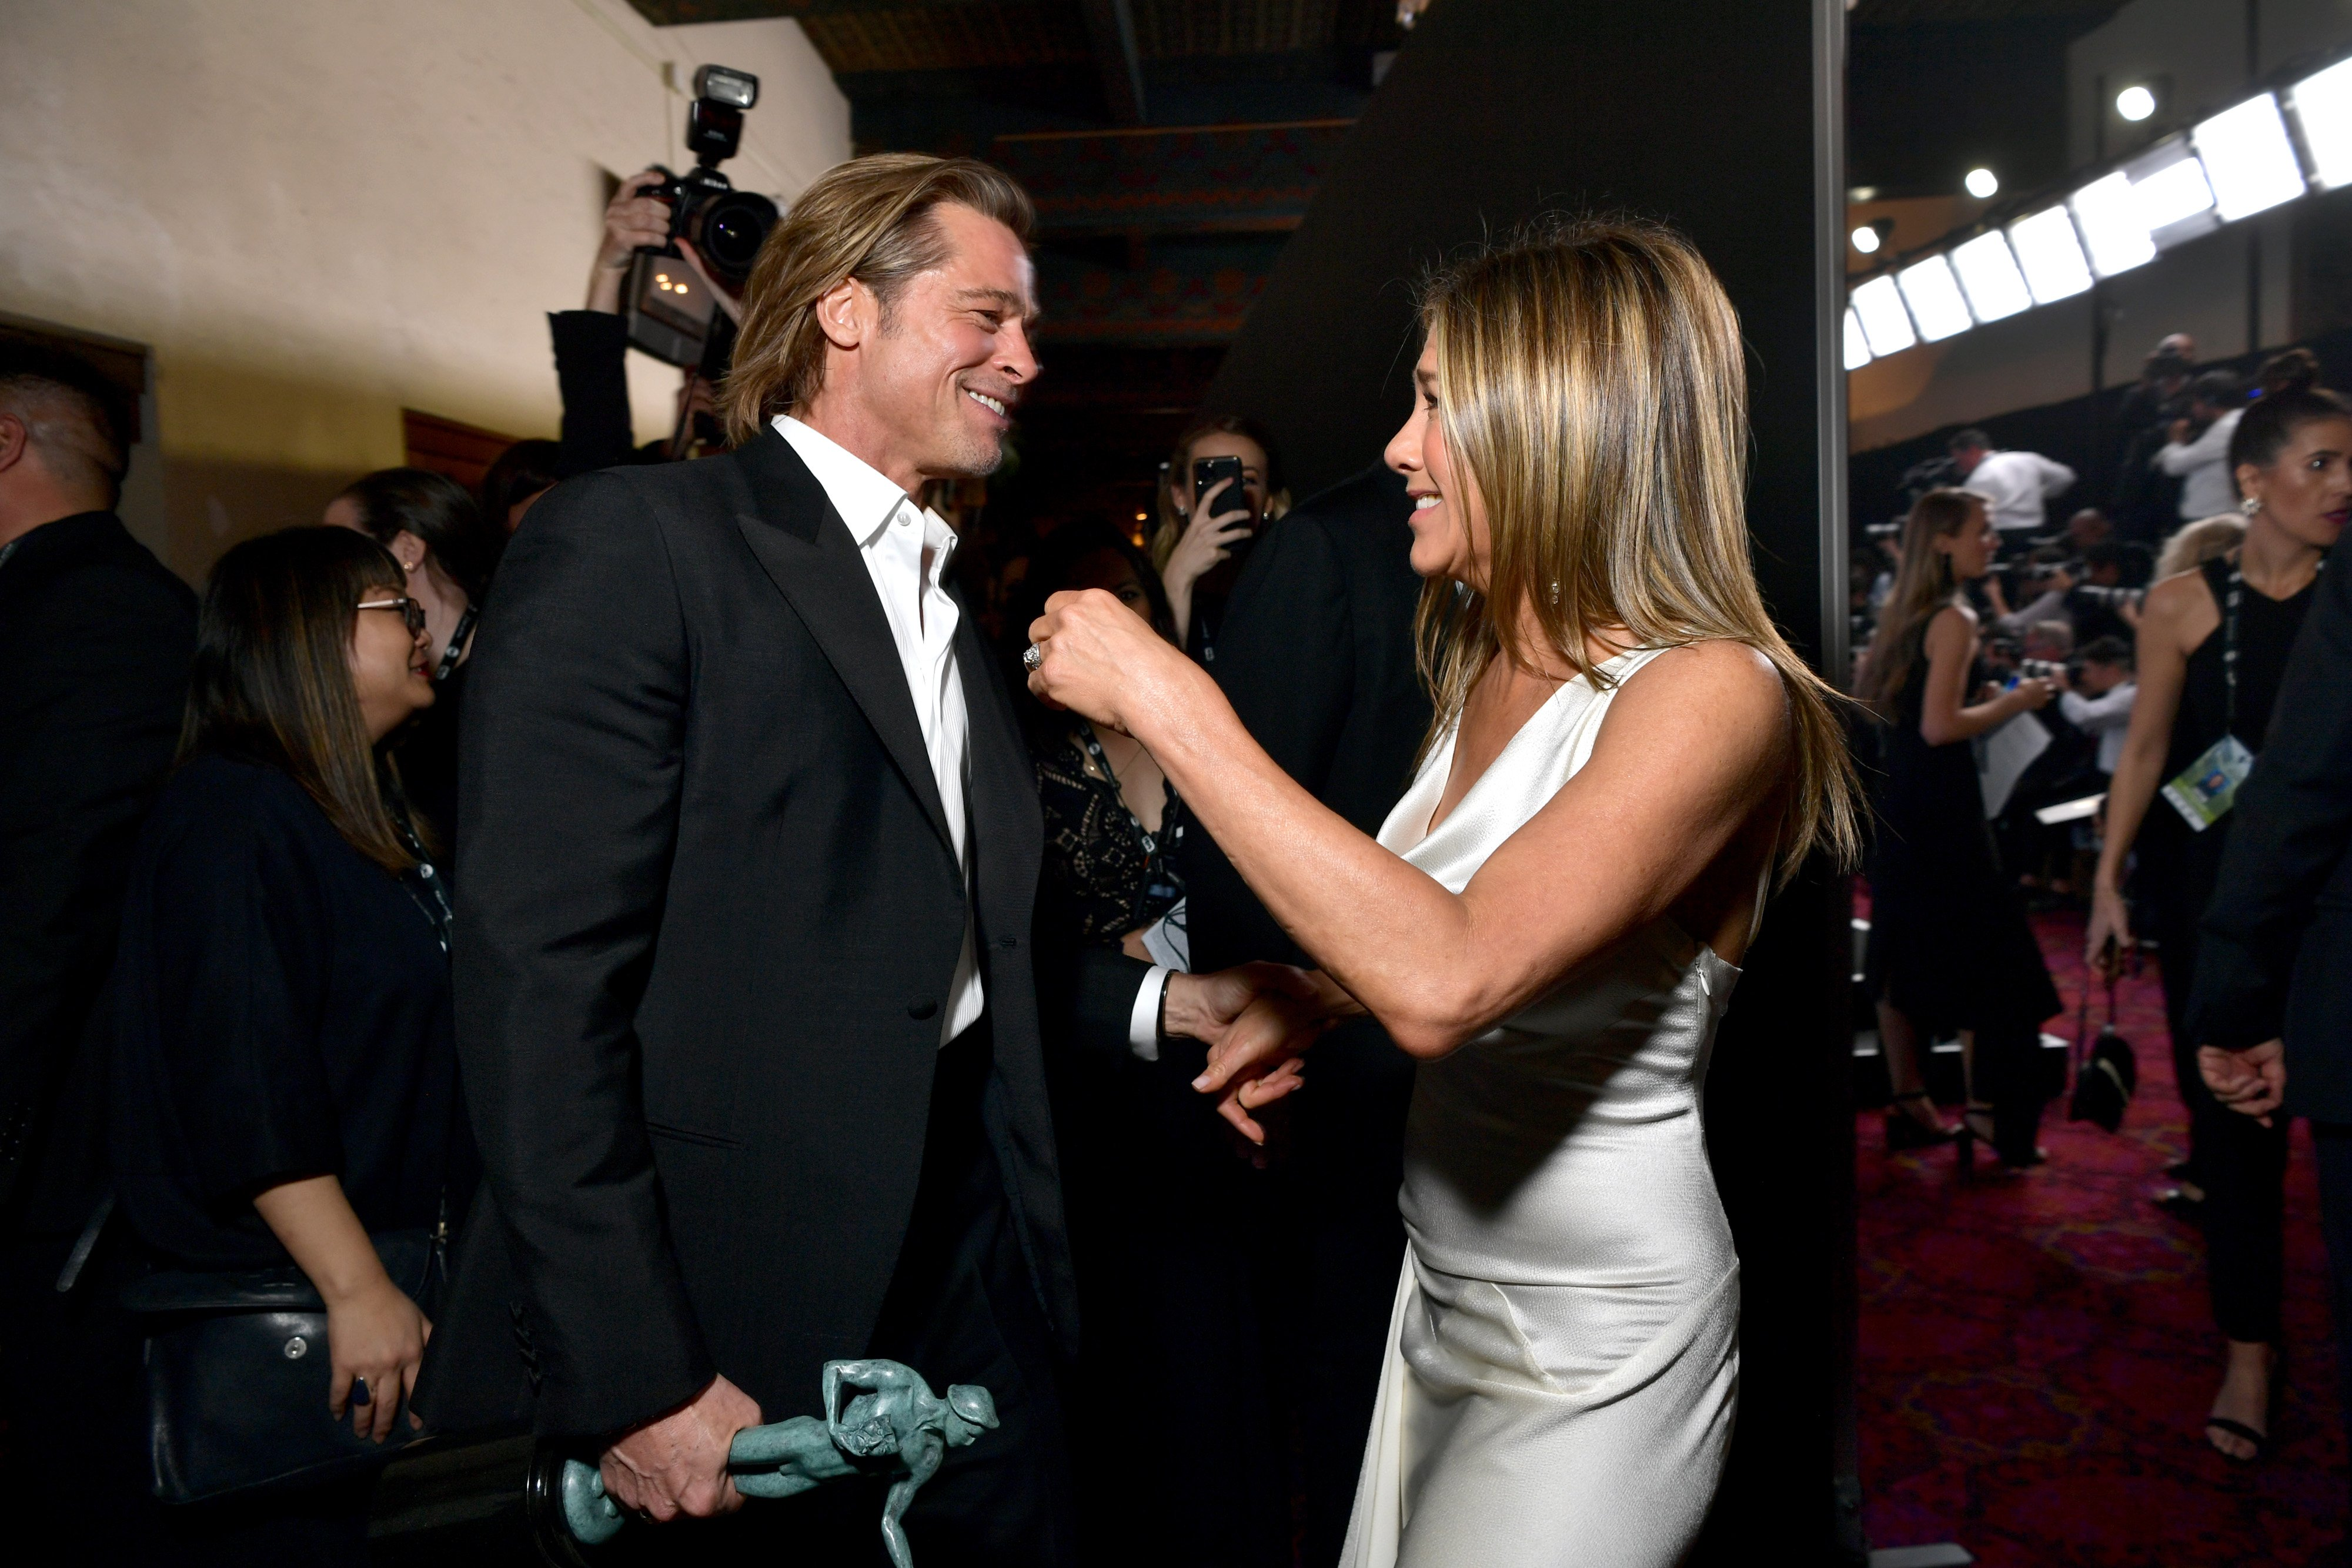 Image Credits: Getty Images / Emma McIntyre | Brad Pitt and Jennifer Aniston attend the 26th Annual Screen Actors Guild Awards at The Shrine Auditorium on January 19, 2020 in Los Angeles, California.